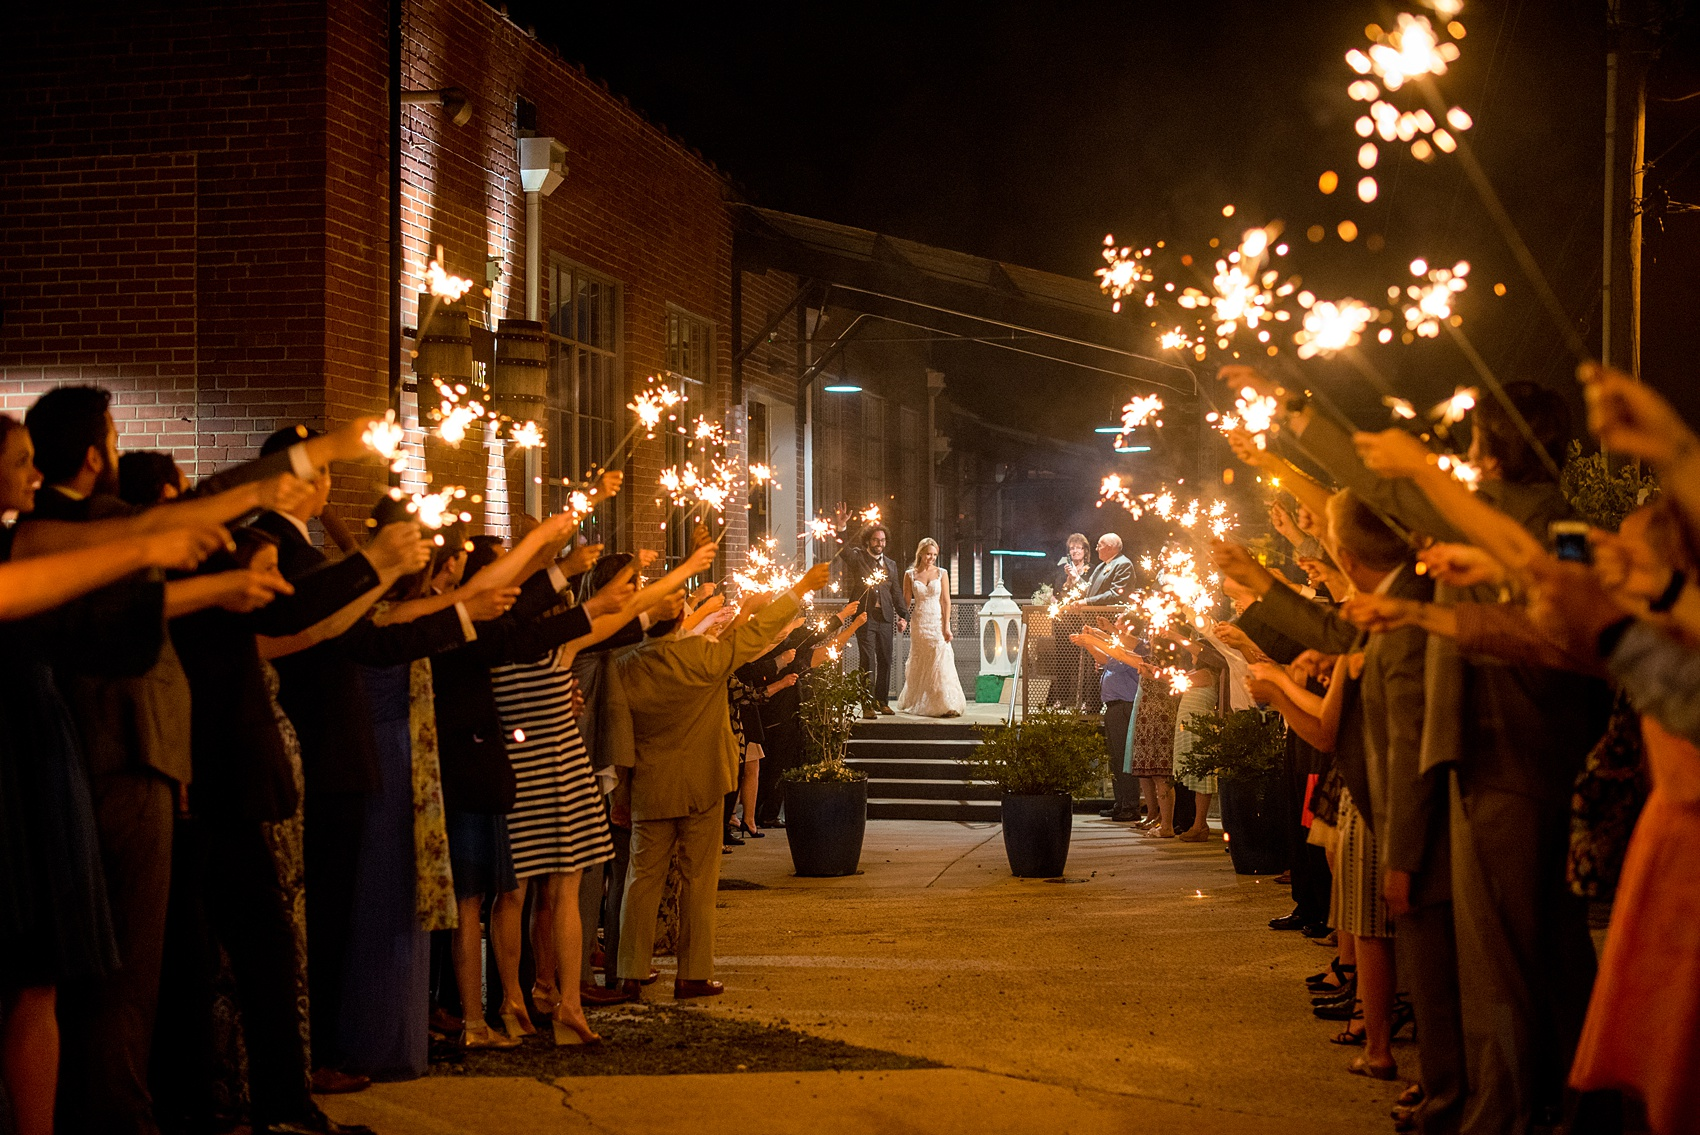 Mikkel Paige Photography photos from a wedding at The Rickhouse in Durham, North Carolina. Picture of the couple's sparkler exit.